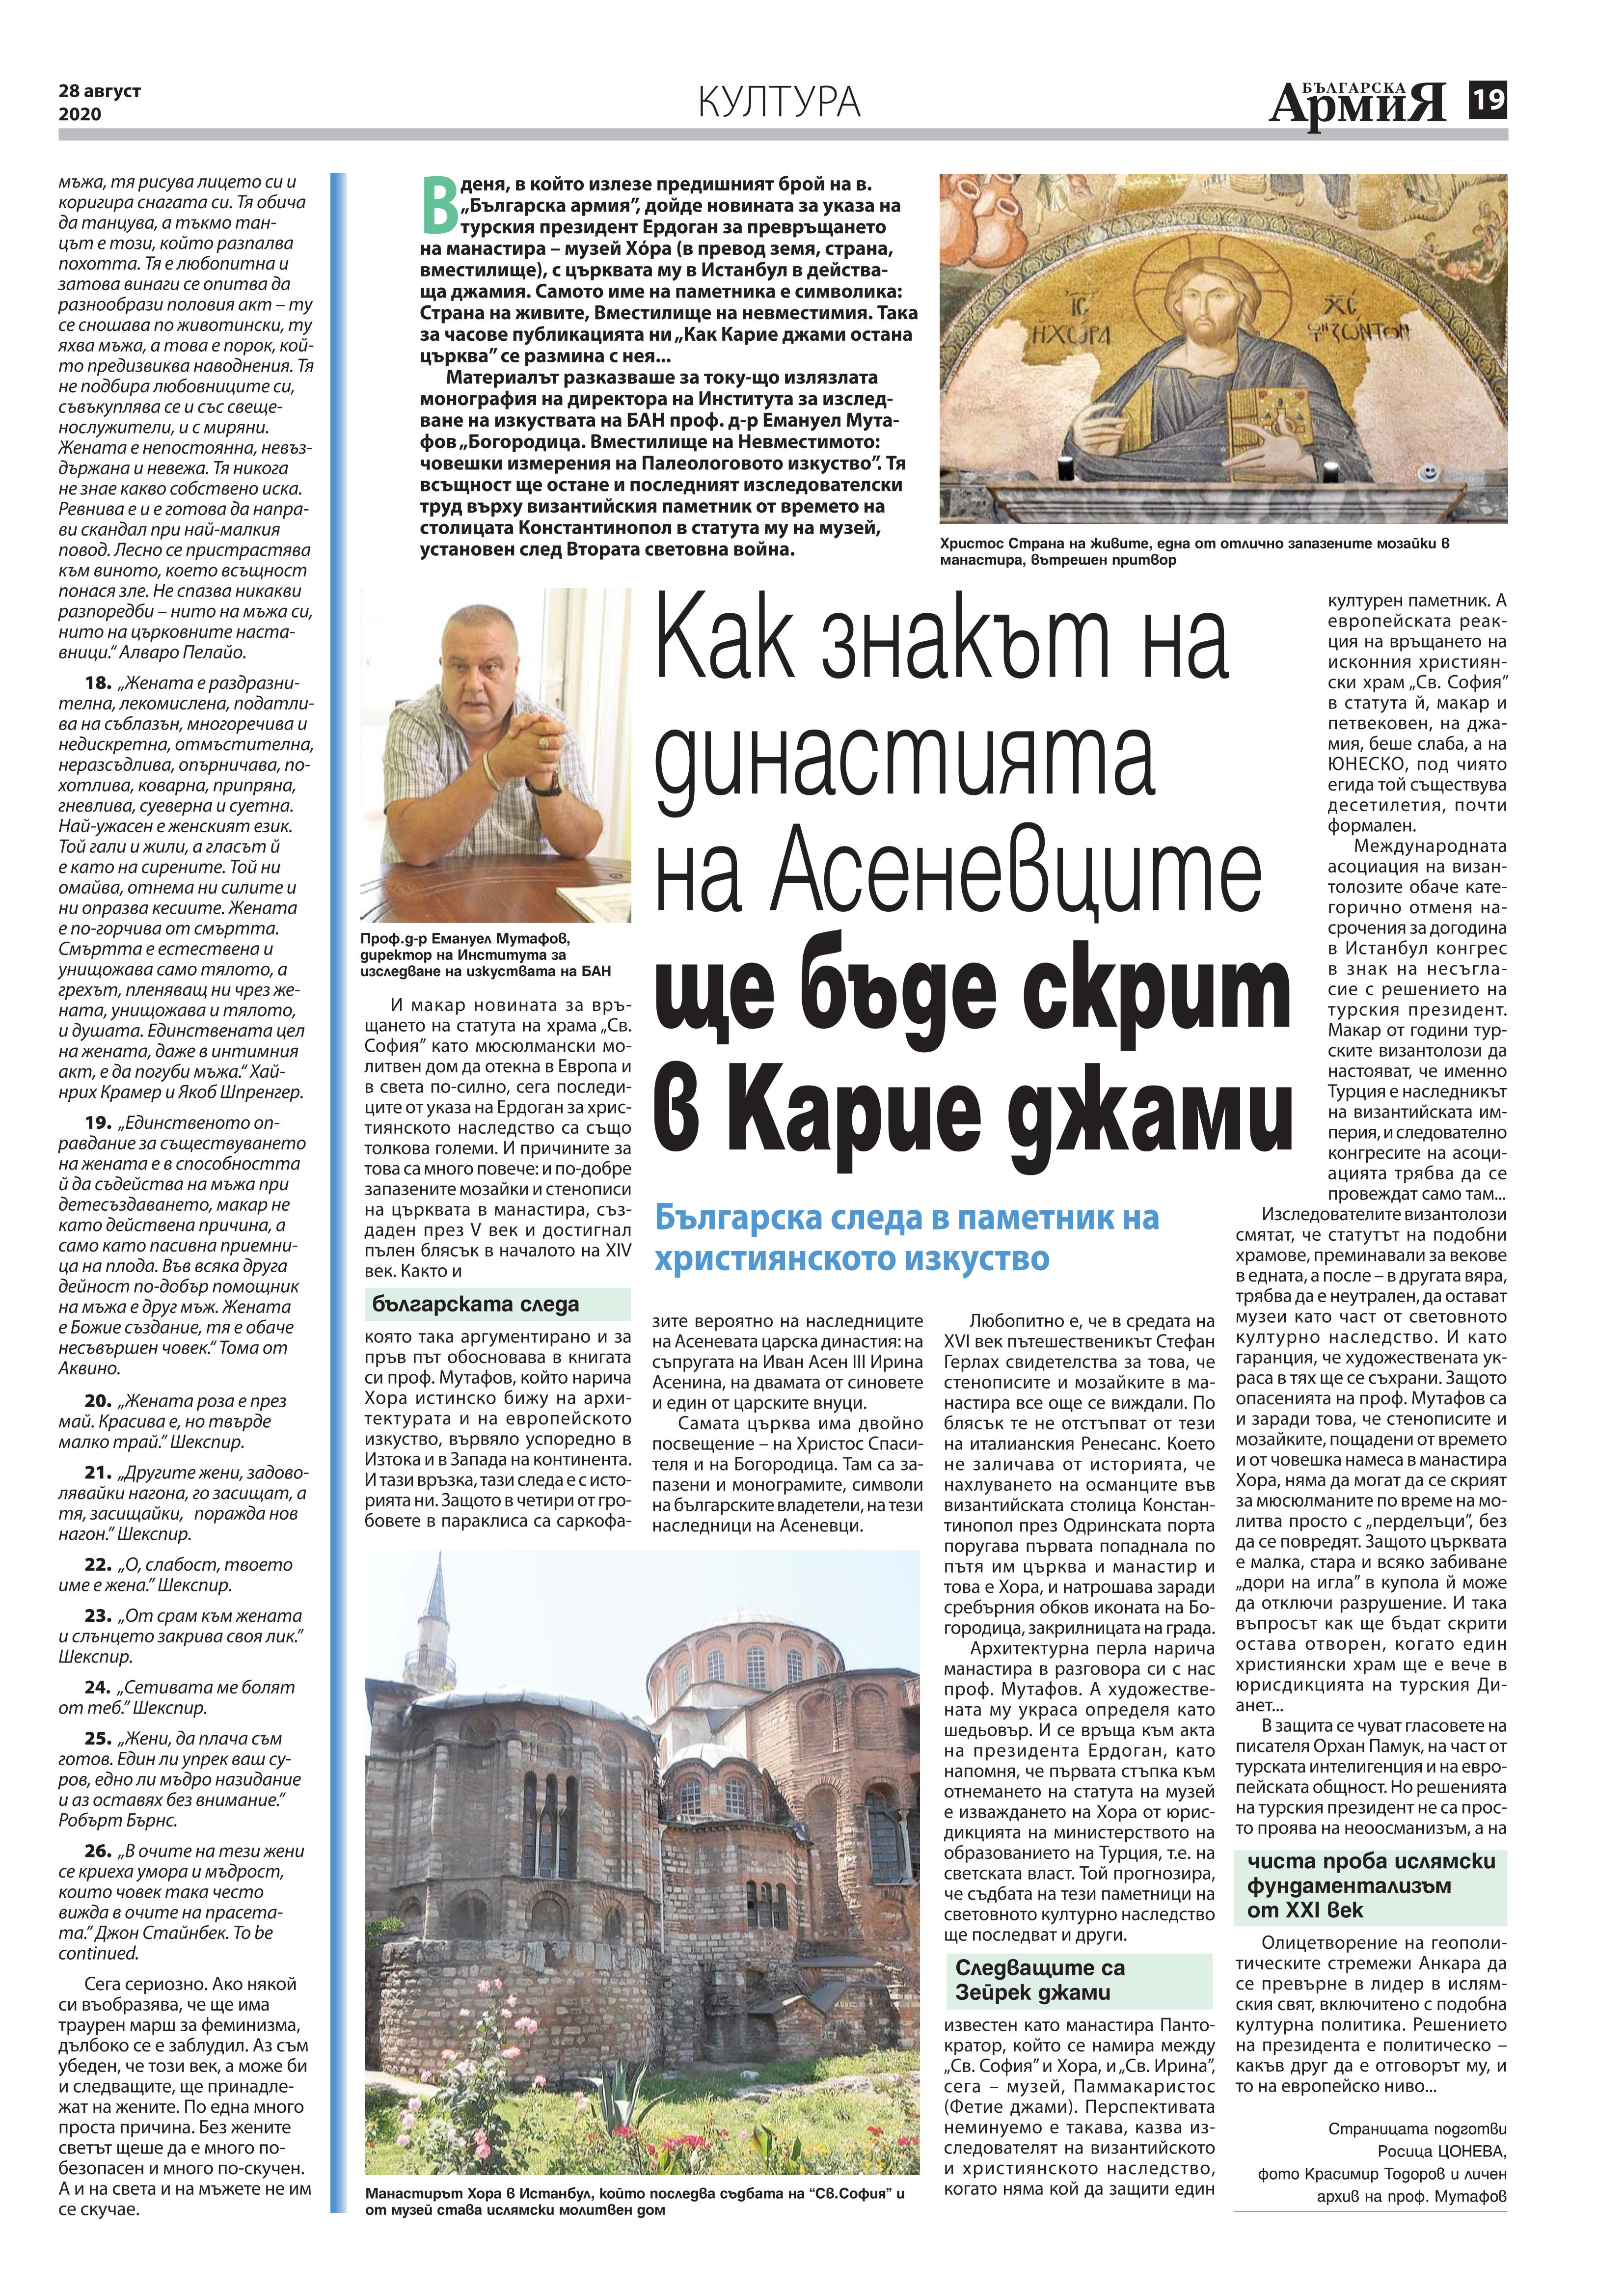 https://armymedia.bg/wp-content/uploads/2015/06/19.page1_-151.jpg